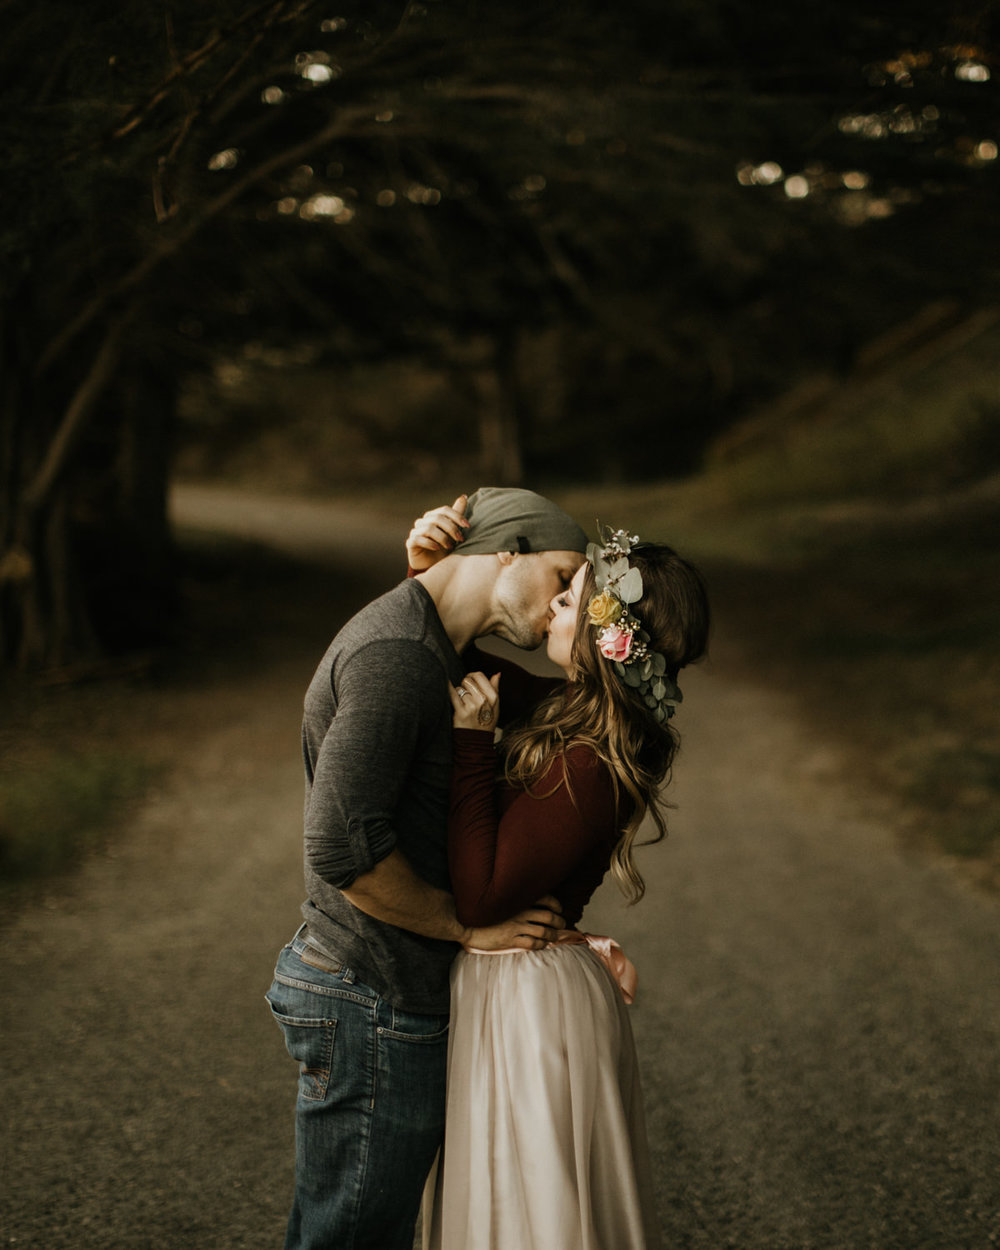 couple-intimate-engagement-session-sausalito-california-89.jpg